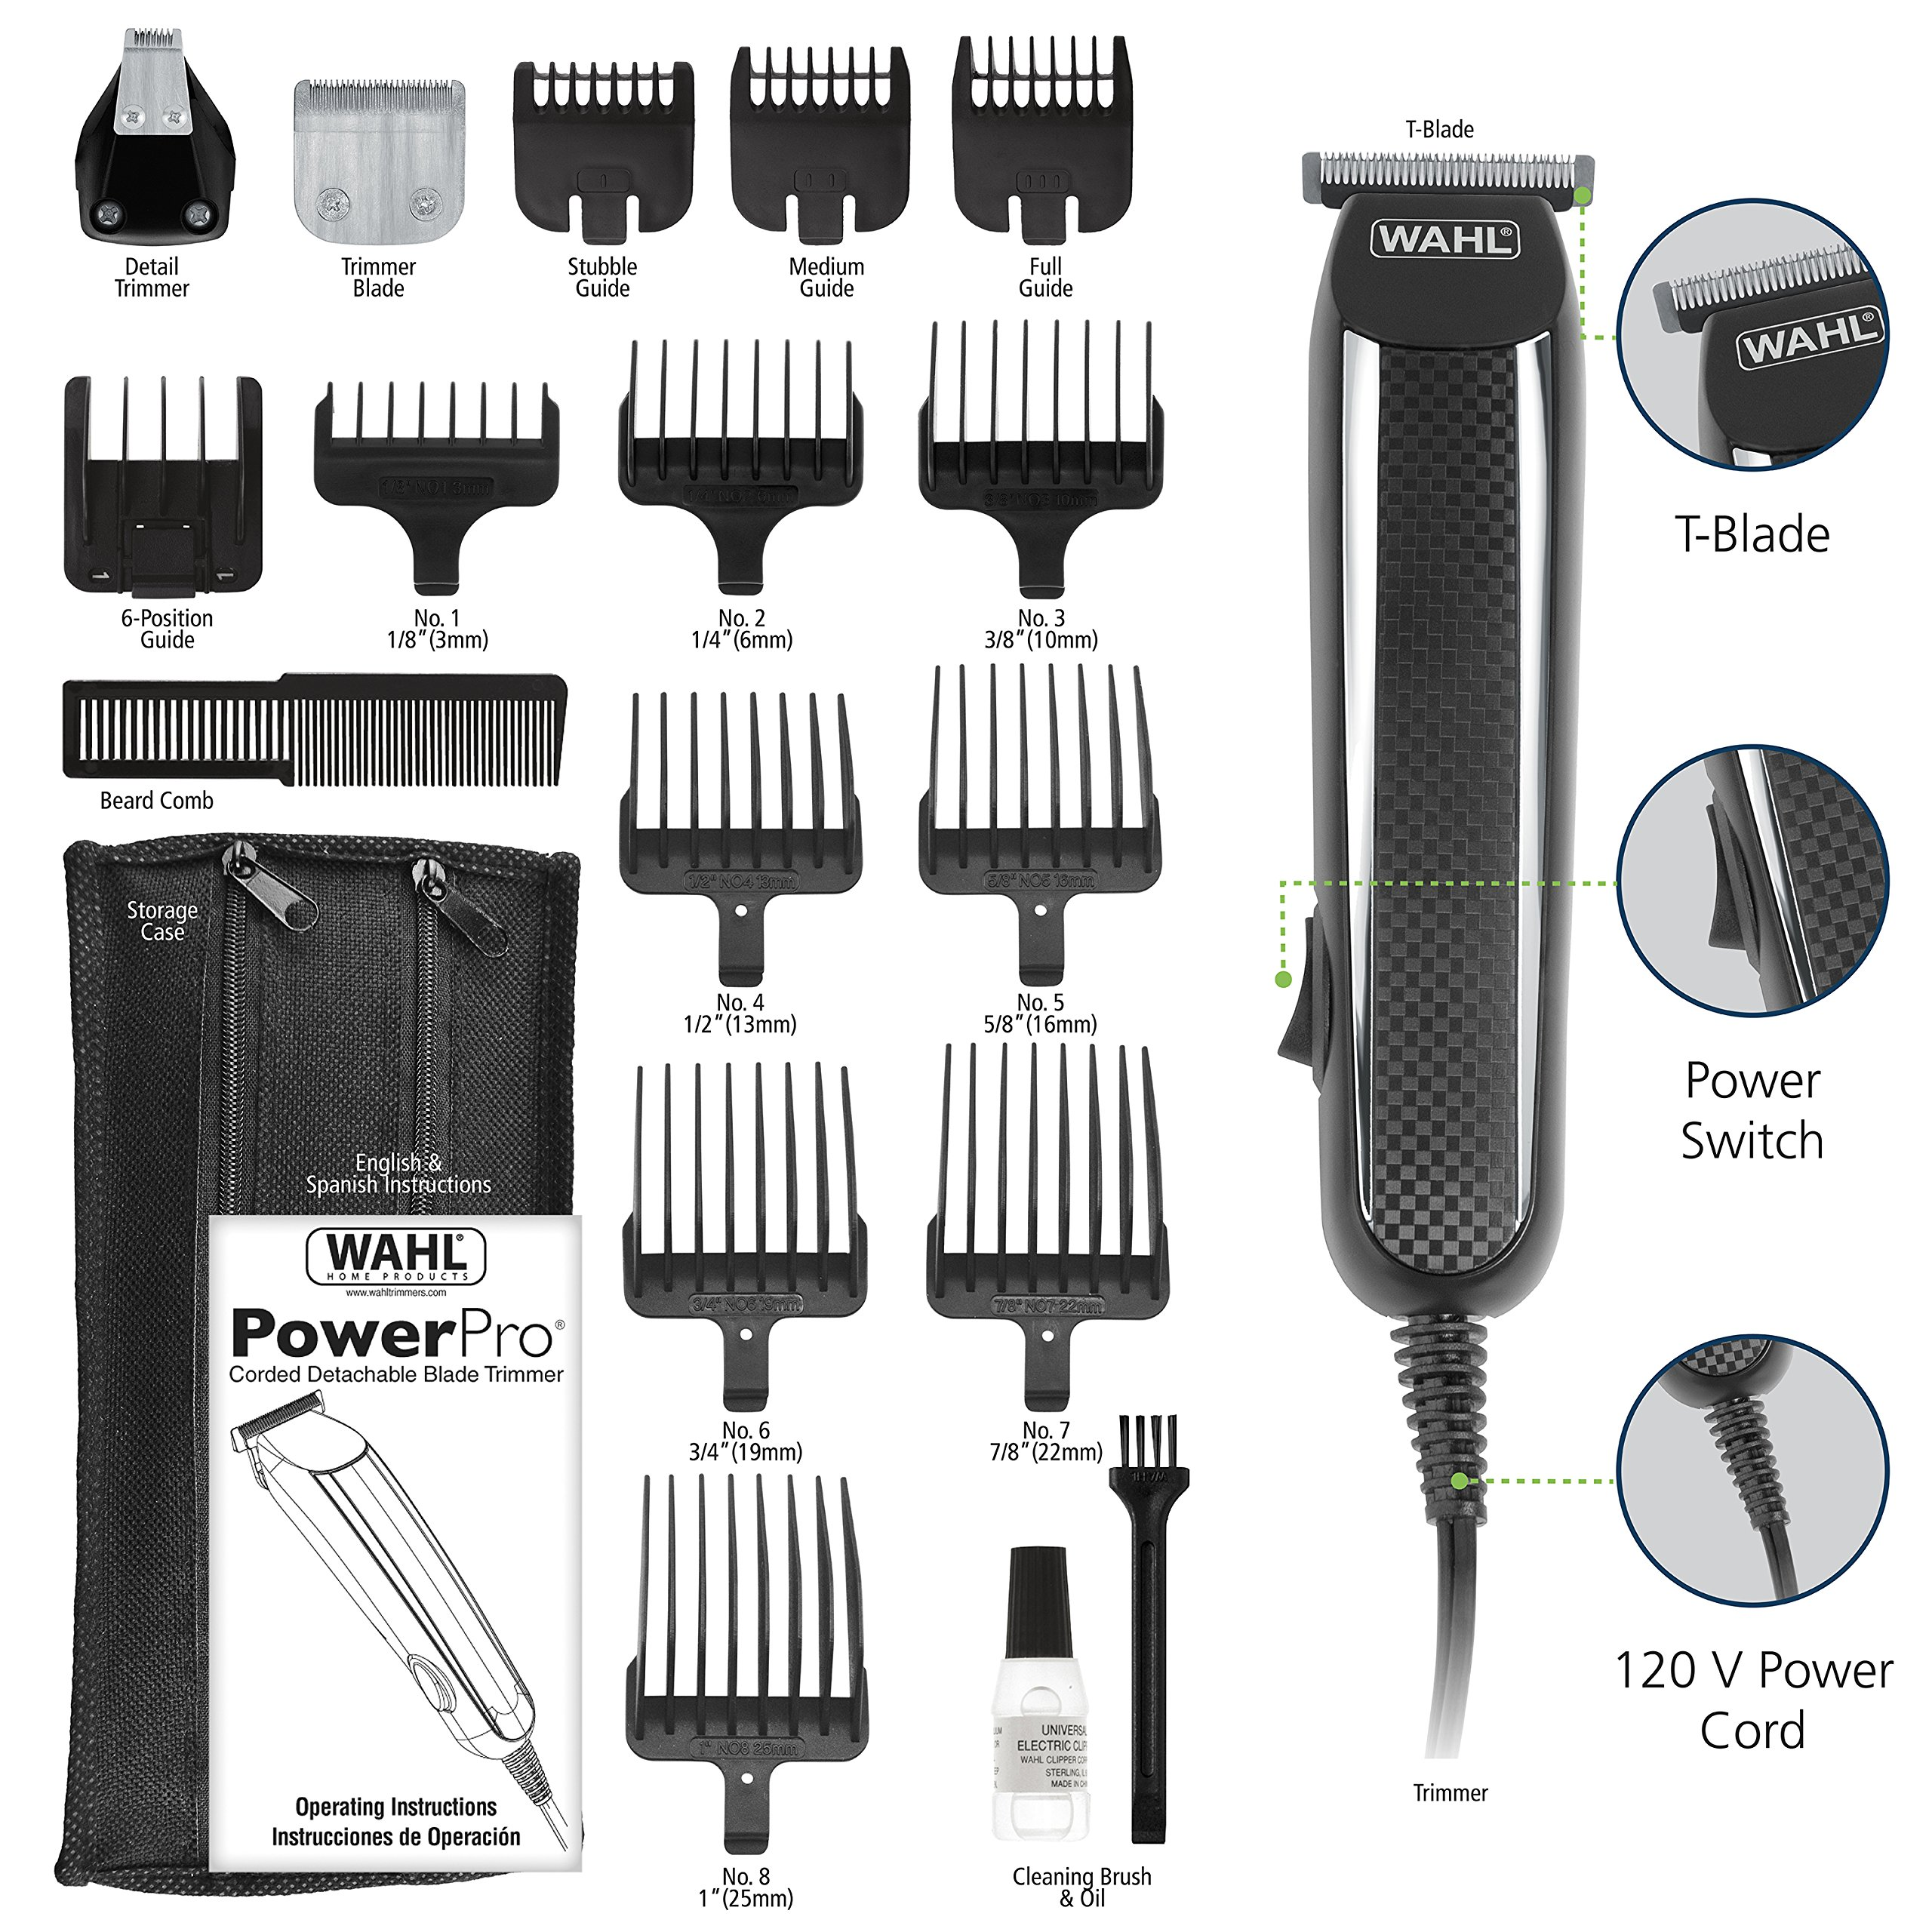 Wahl Clipper PowerPro Corded Beard Trimmers, Hair Clippers and Haircut Trimmers, men's grooming kits for Beard, Mustache, Stubble, Ear, Nose, Body Grooming, by the Brand used by Professionals # 9686 by Wahl (Image #5)